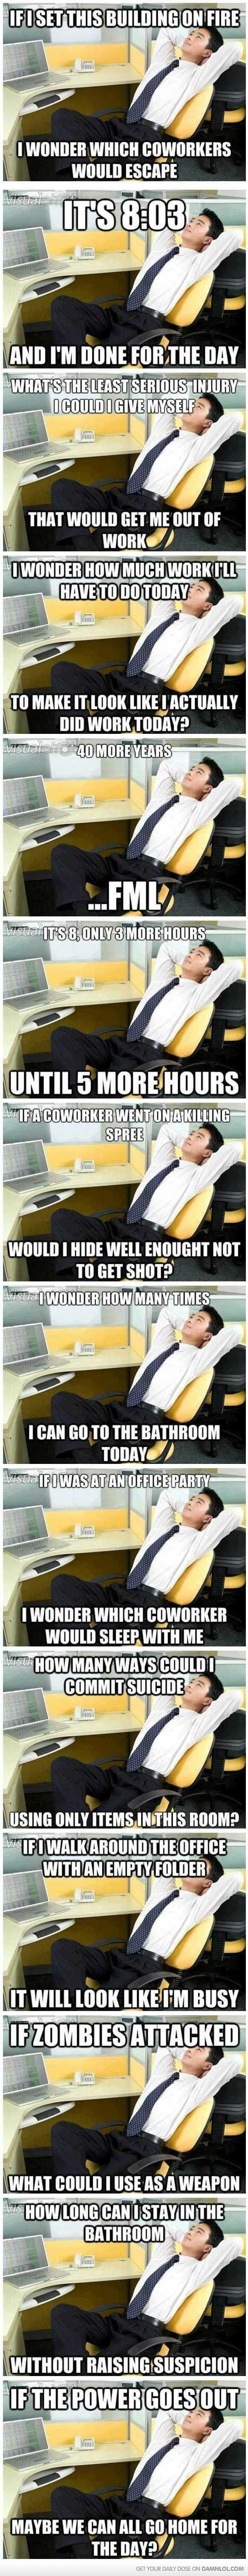 Office Thoughts